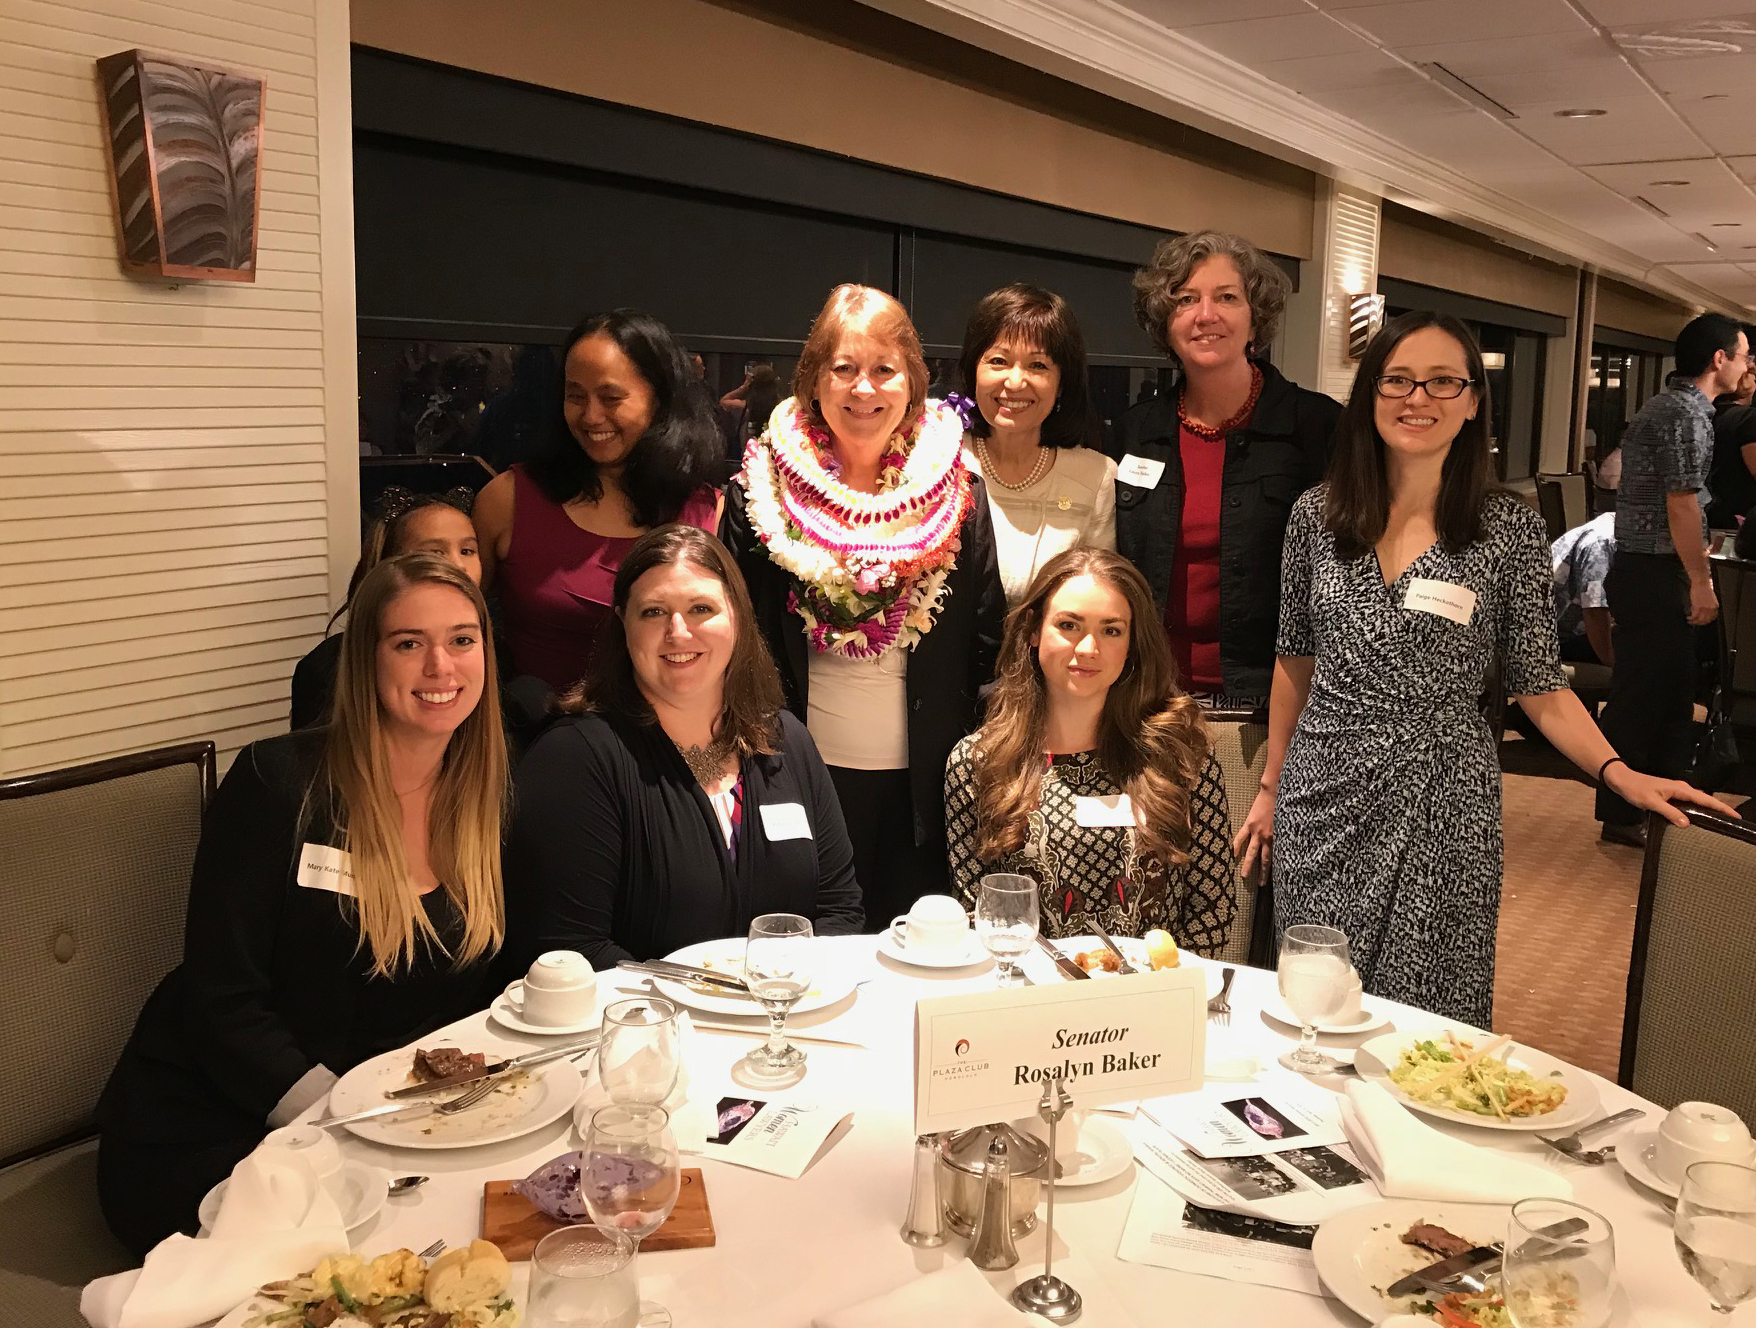 Hawaii Women Lawyers Board presented Roz with their 2018 Hawai'i Women Lawyers President's Award for her dedication and accomplishments on women's issues during her years in the Legislature.  (April 12, 2018)